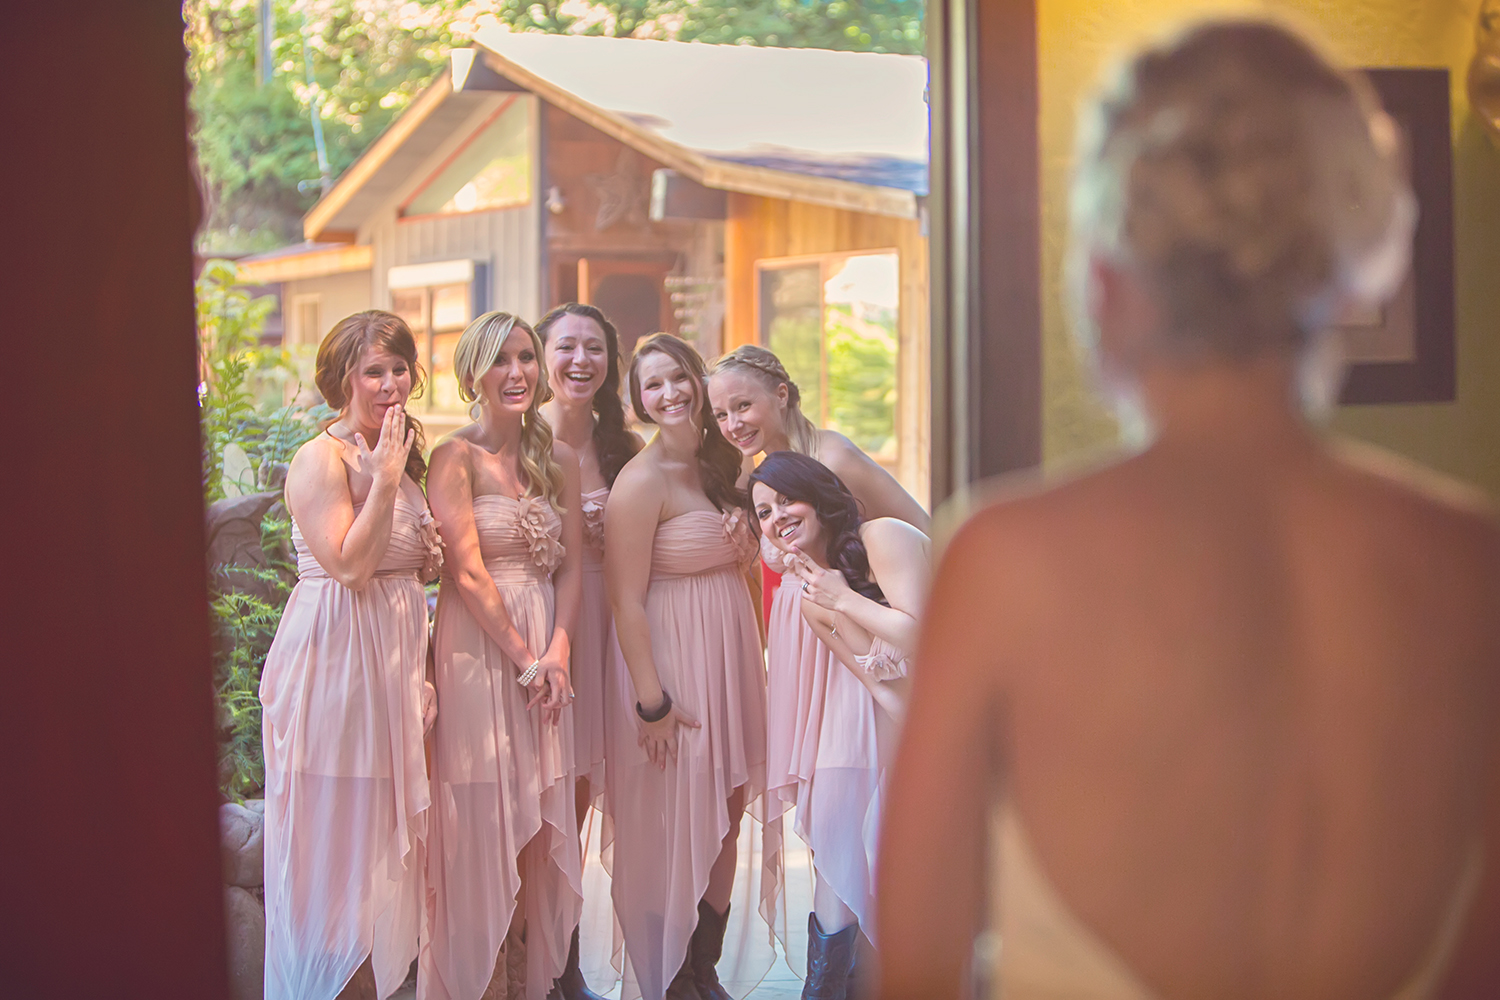 Dena_Rooney_Wedding_Photographer_Santa_Cruz_008.jpg